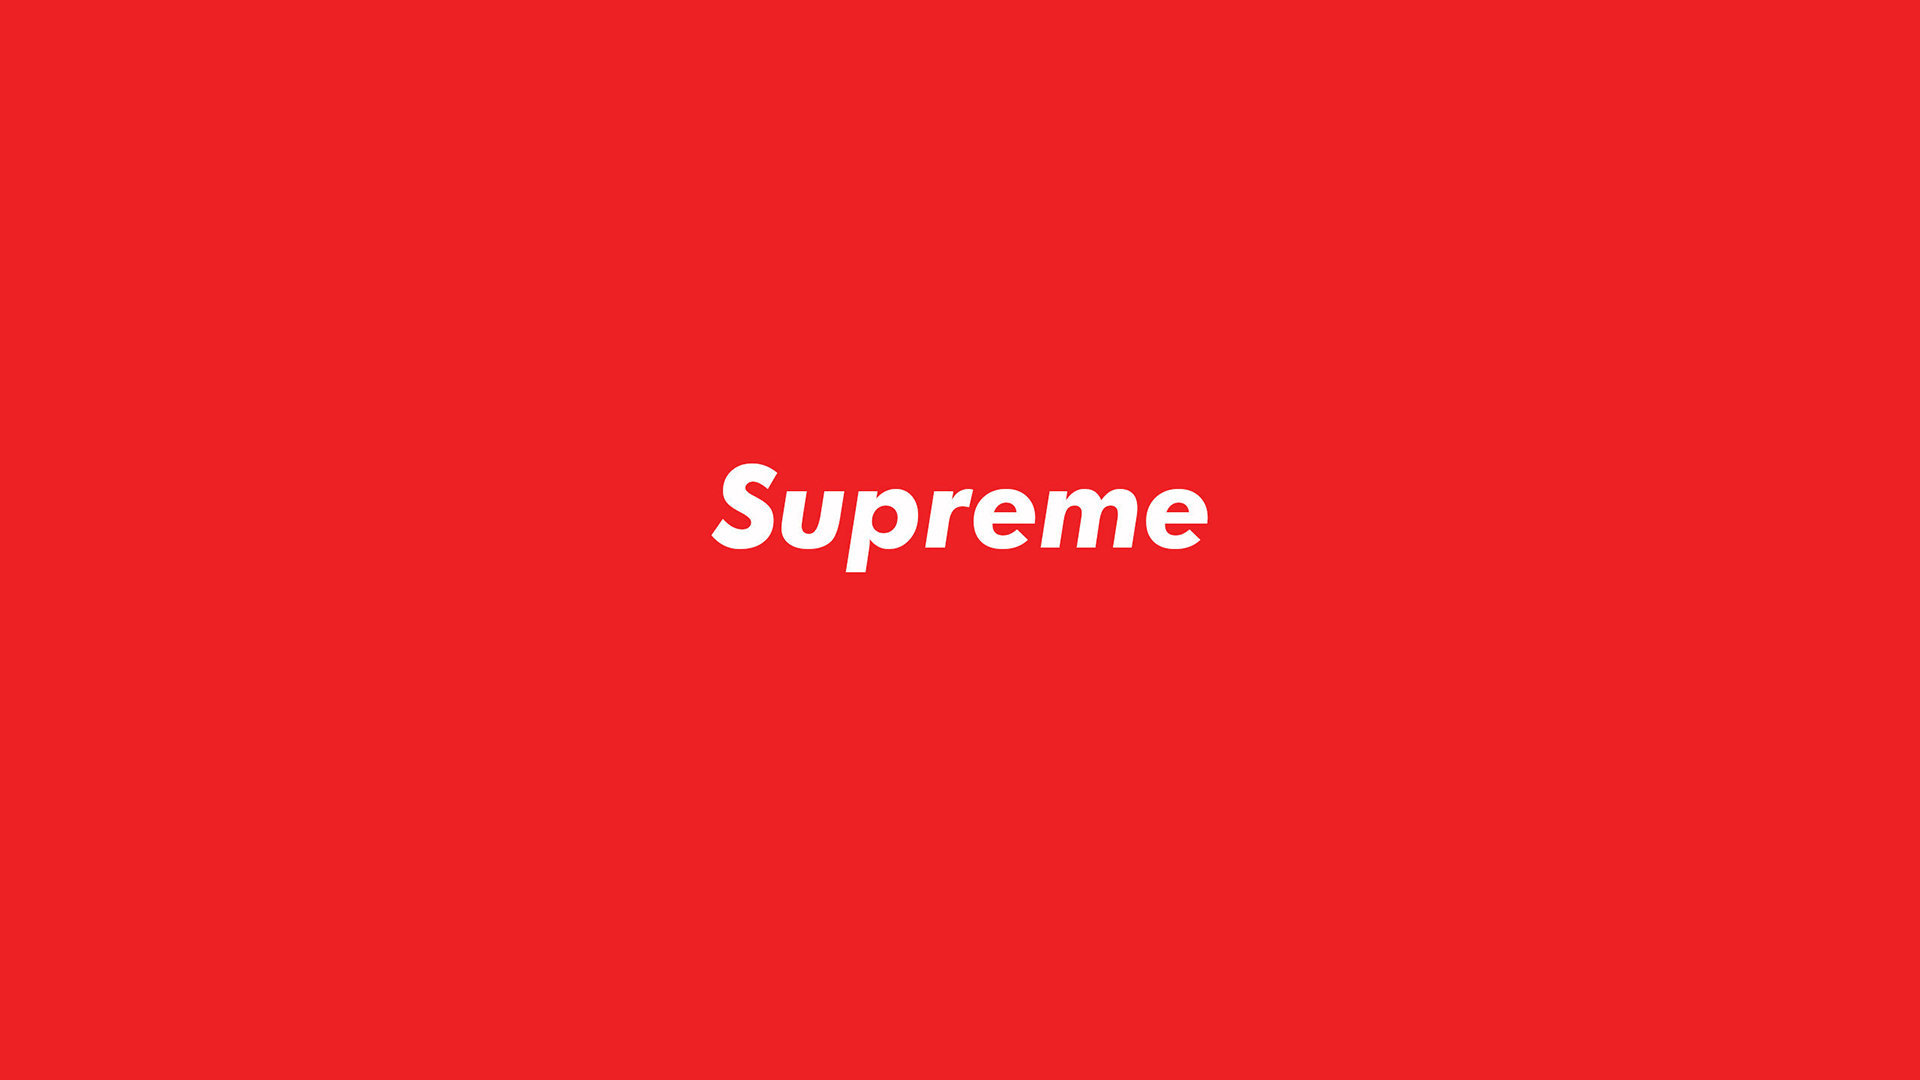 Downloading Your New Supreme wallpaper HD